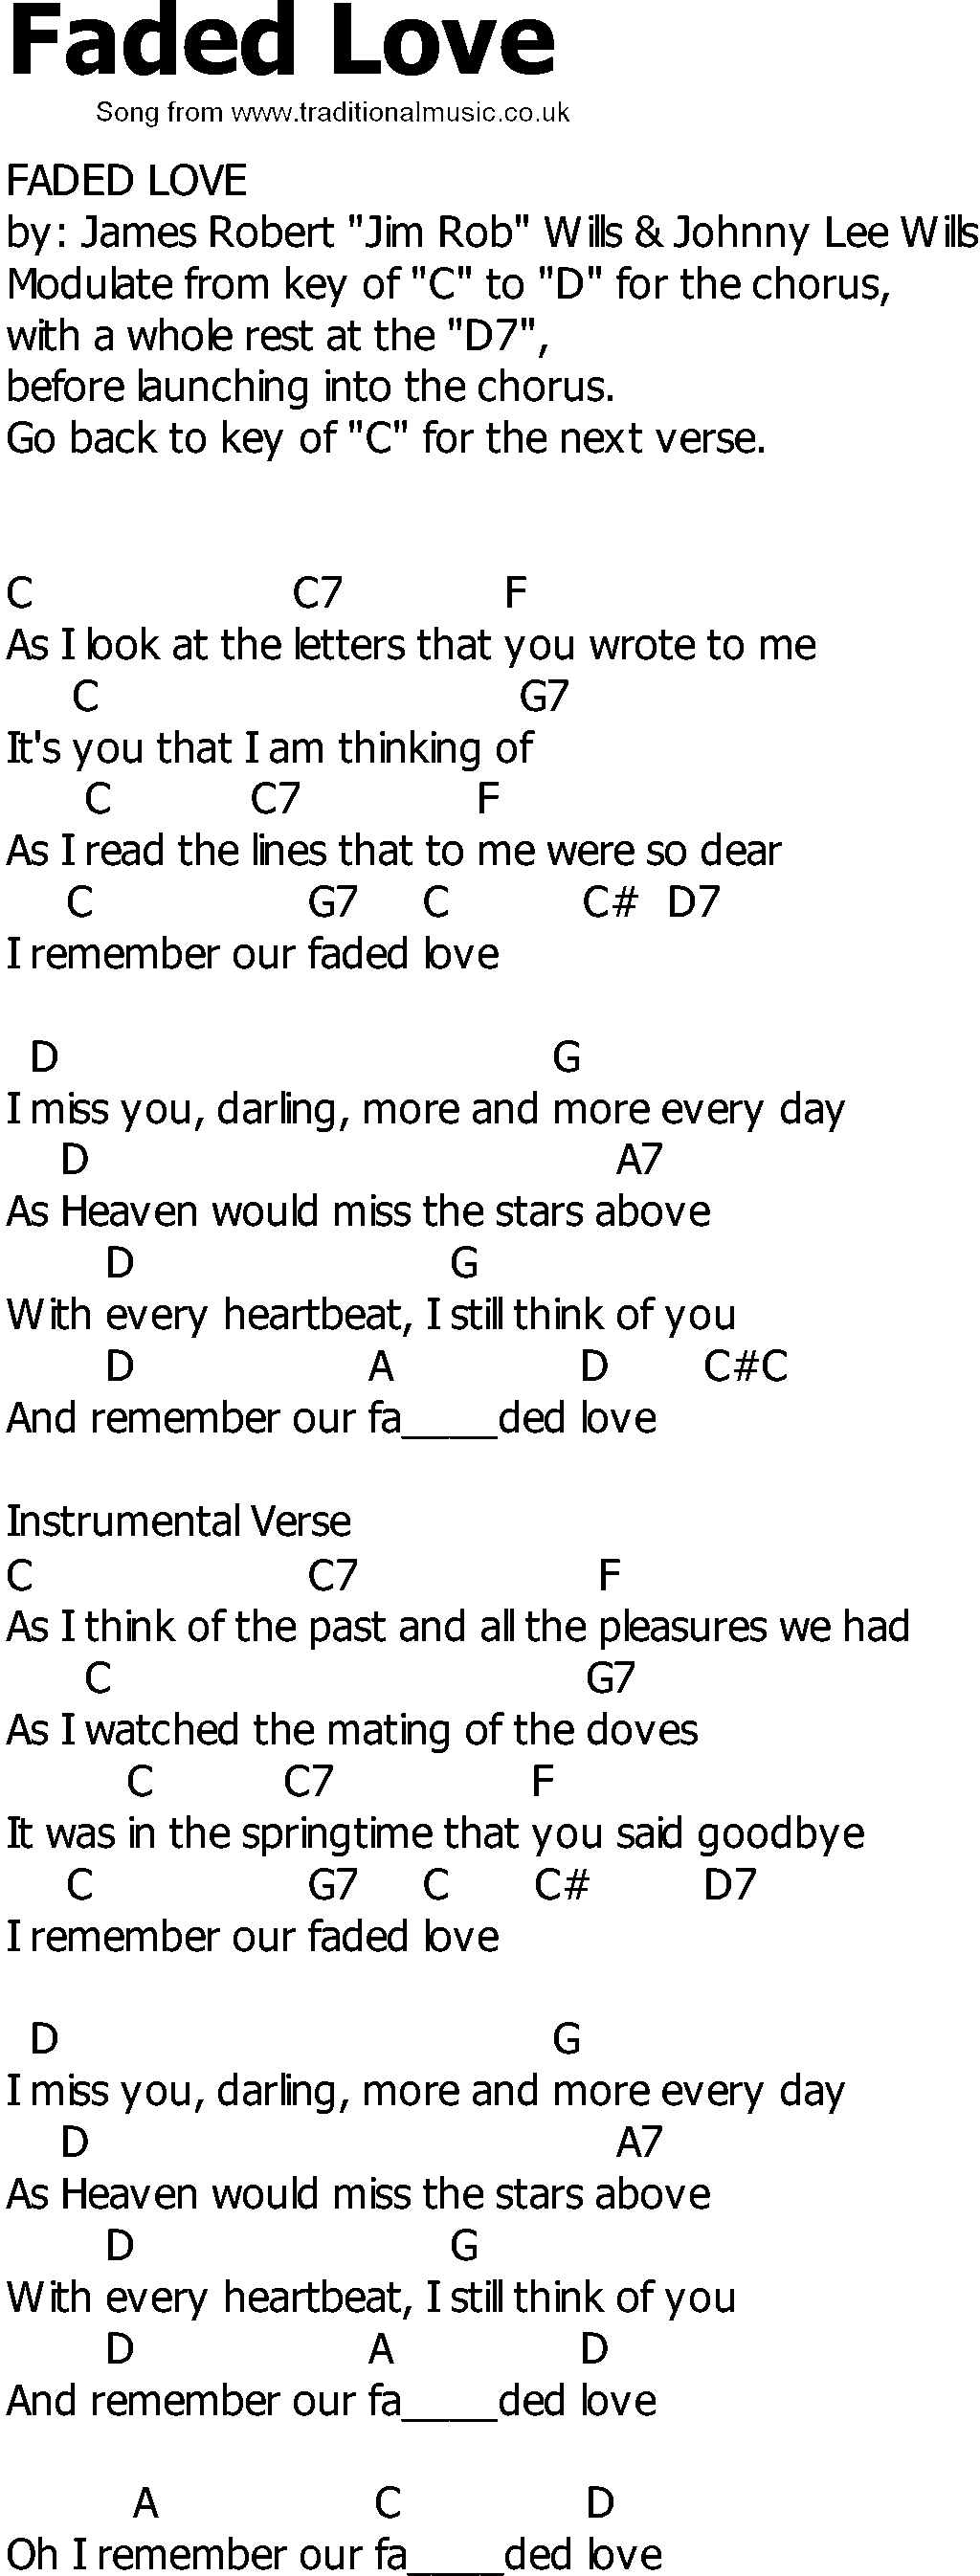 Old Country Song Lyrics With Chords Faded Love